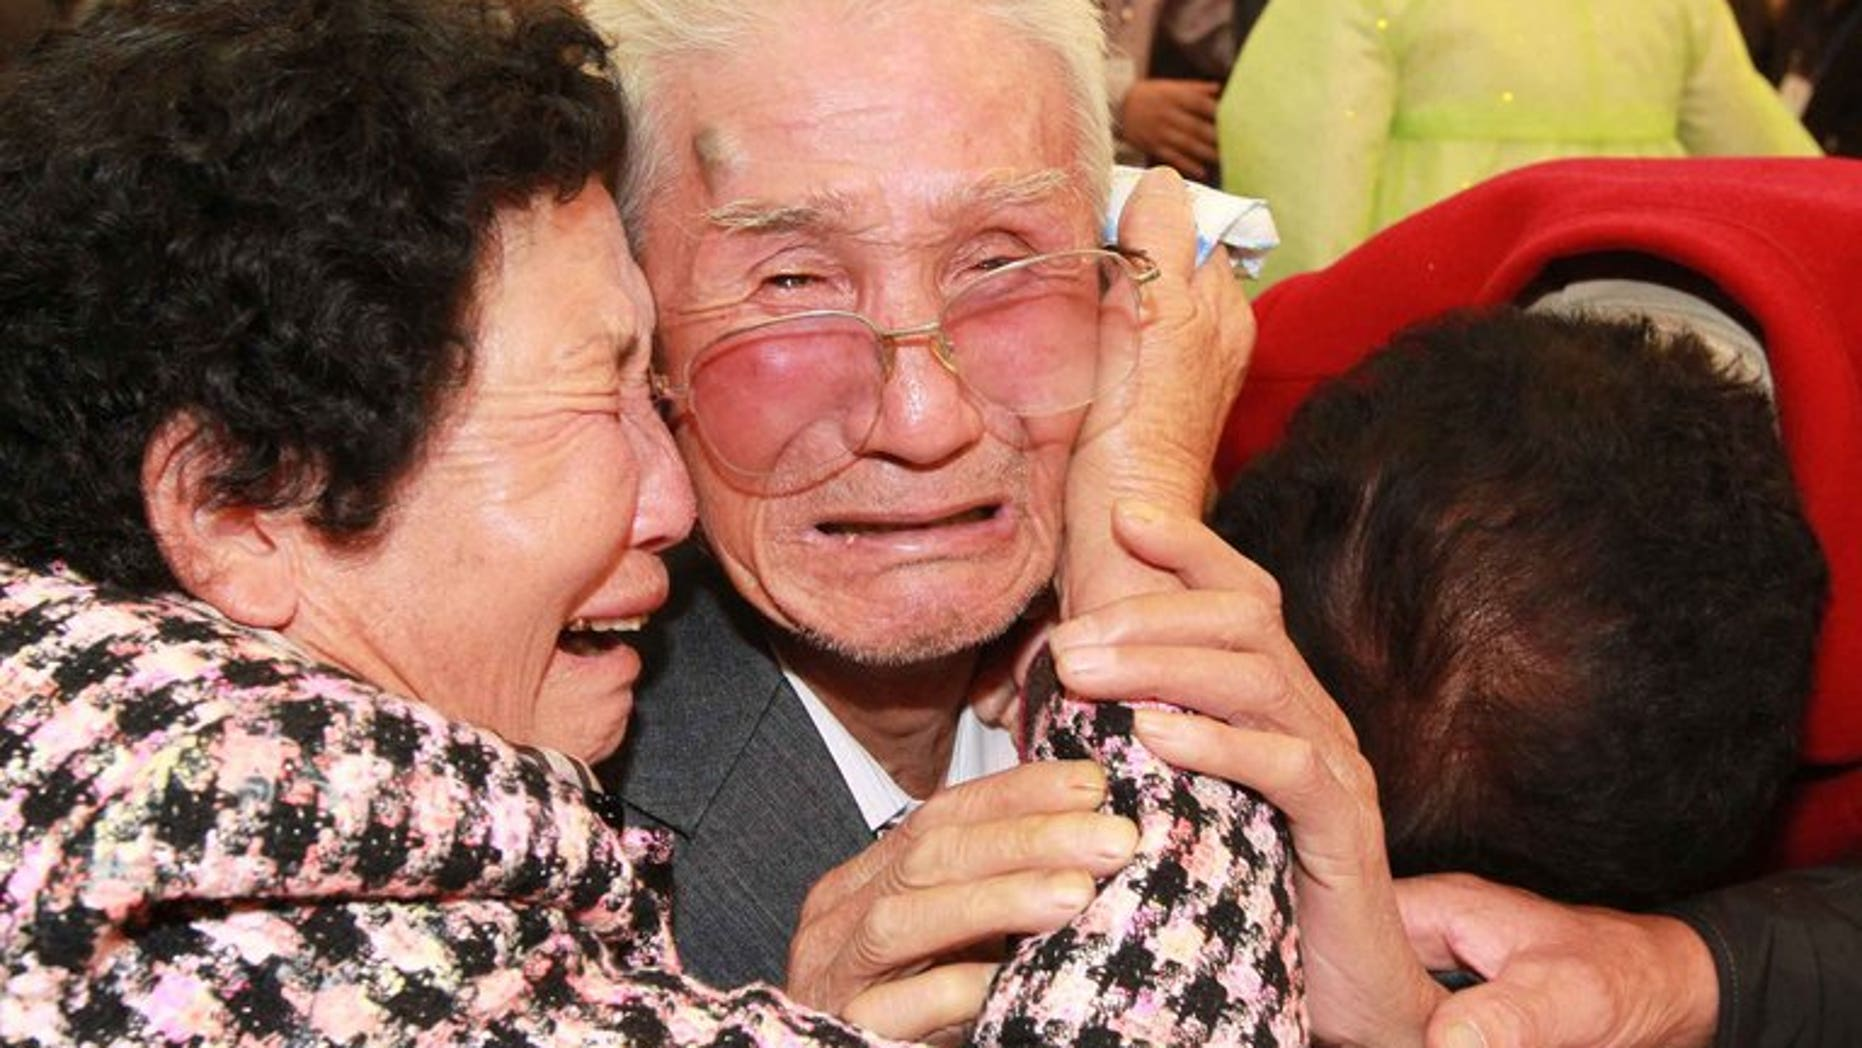 North Korean Kim Jin-Won (centre) cries with his South Korean relatives as they bid farewell following their three-day separated family reunion meeting at Mount Kumgang resort on the North's southeastern coast, near the border, on November 1, 2010. South and North Korea agreed Friday to go ahead with reunions next month for families separated for decades by the 1950-53 Korean War, Seoul said.